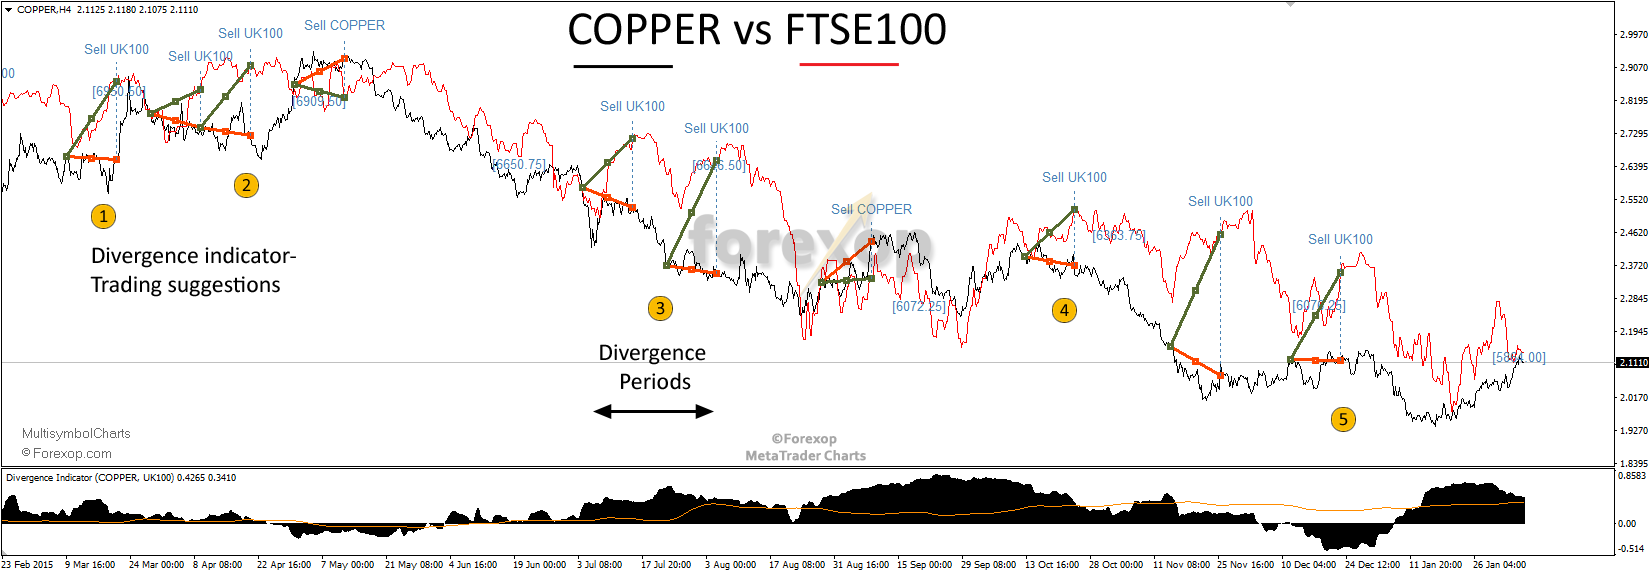 Figure 5: Copper futures versus FTSE-100 share index